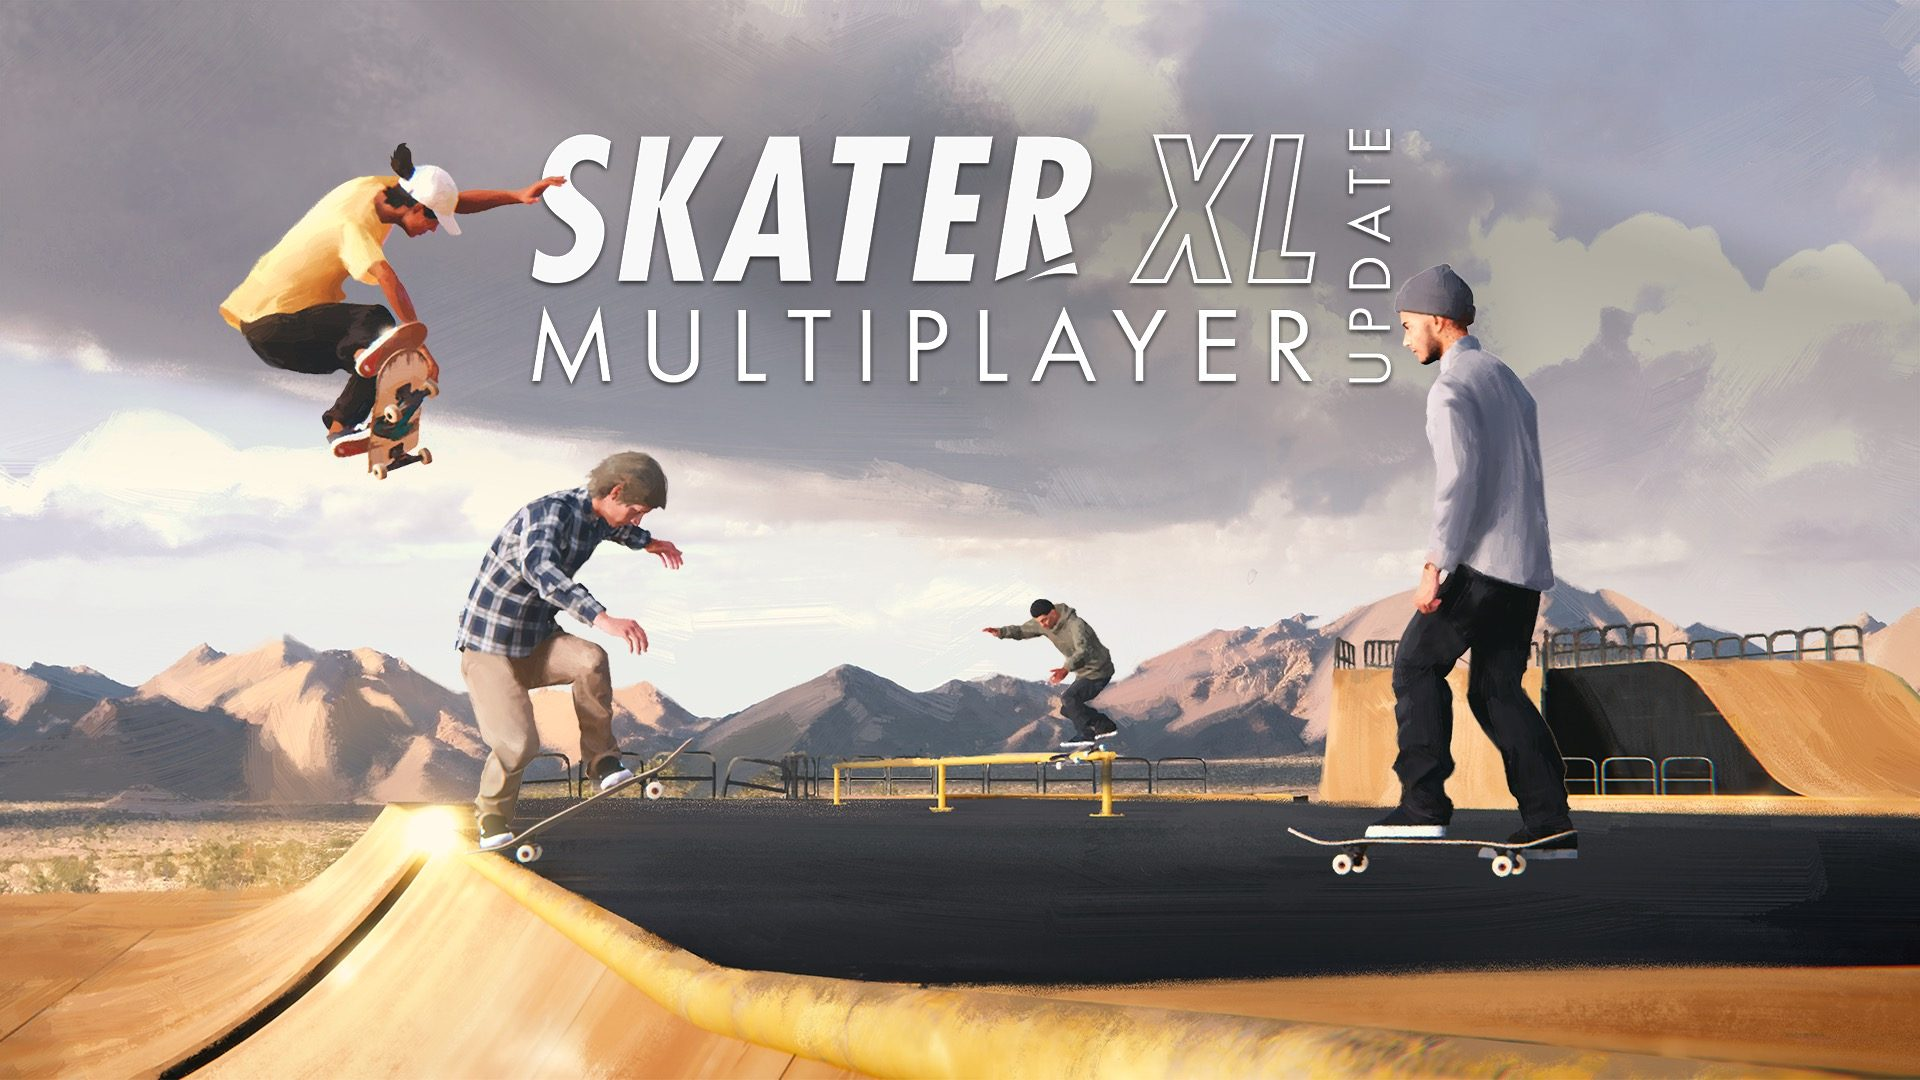 skater-xl-on-the-internet-multiplayer-free-skate-manner-launches-these-days